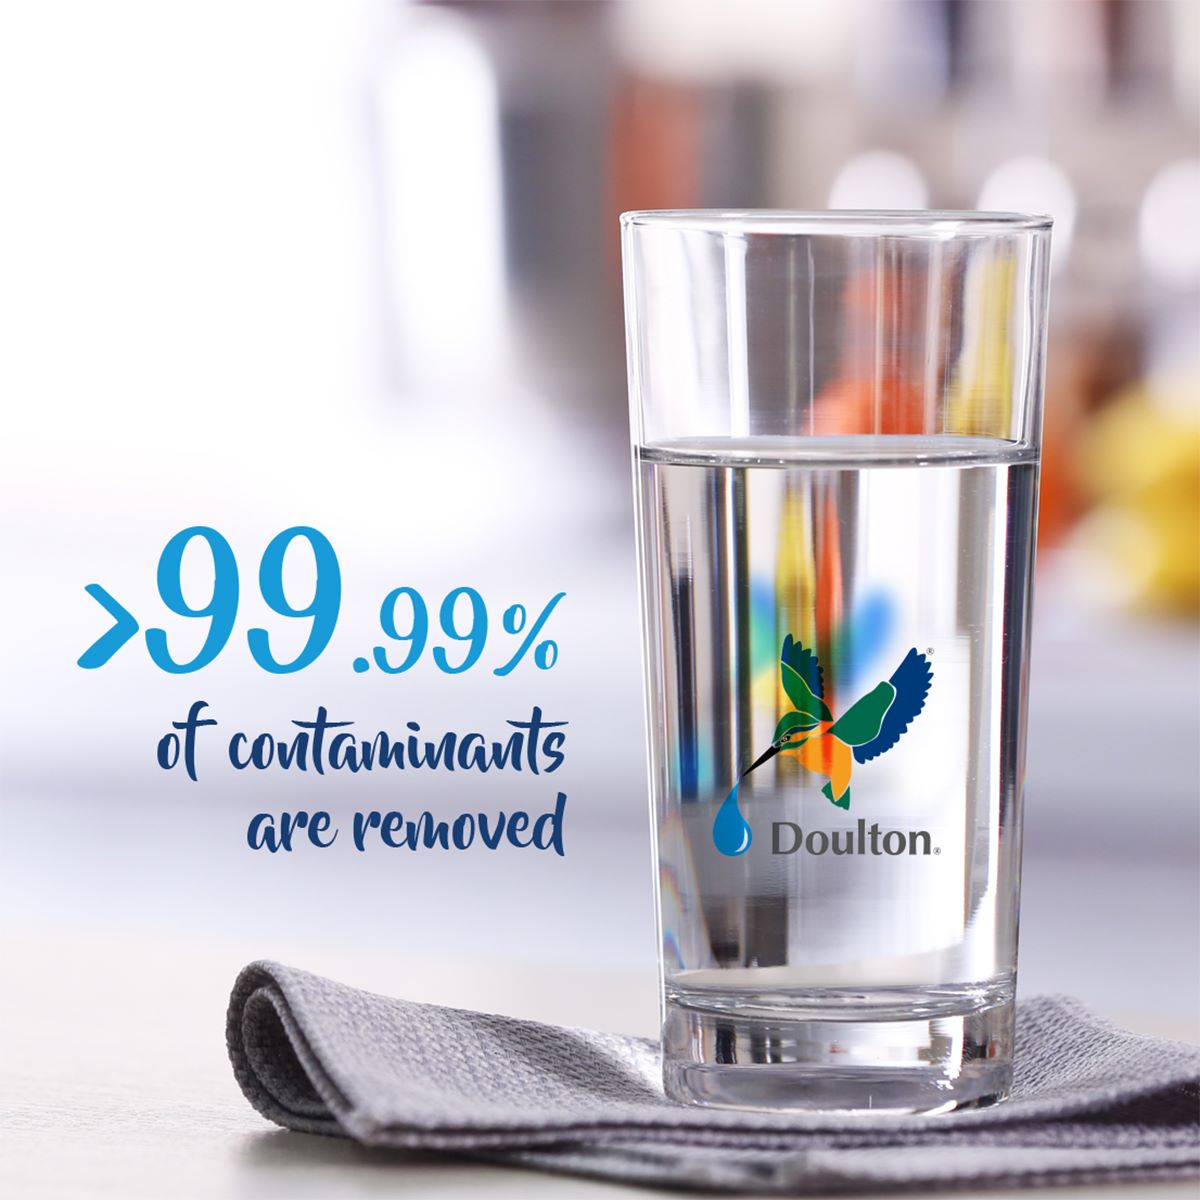 Doulton Water Filters! Good Water Comes Naturally, Everyday!